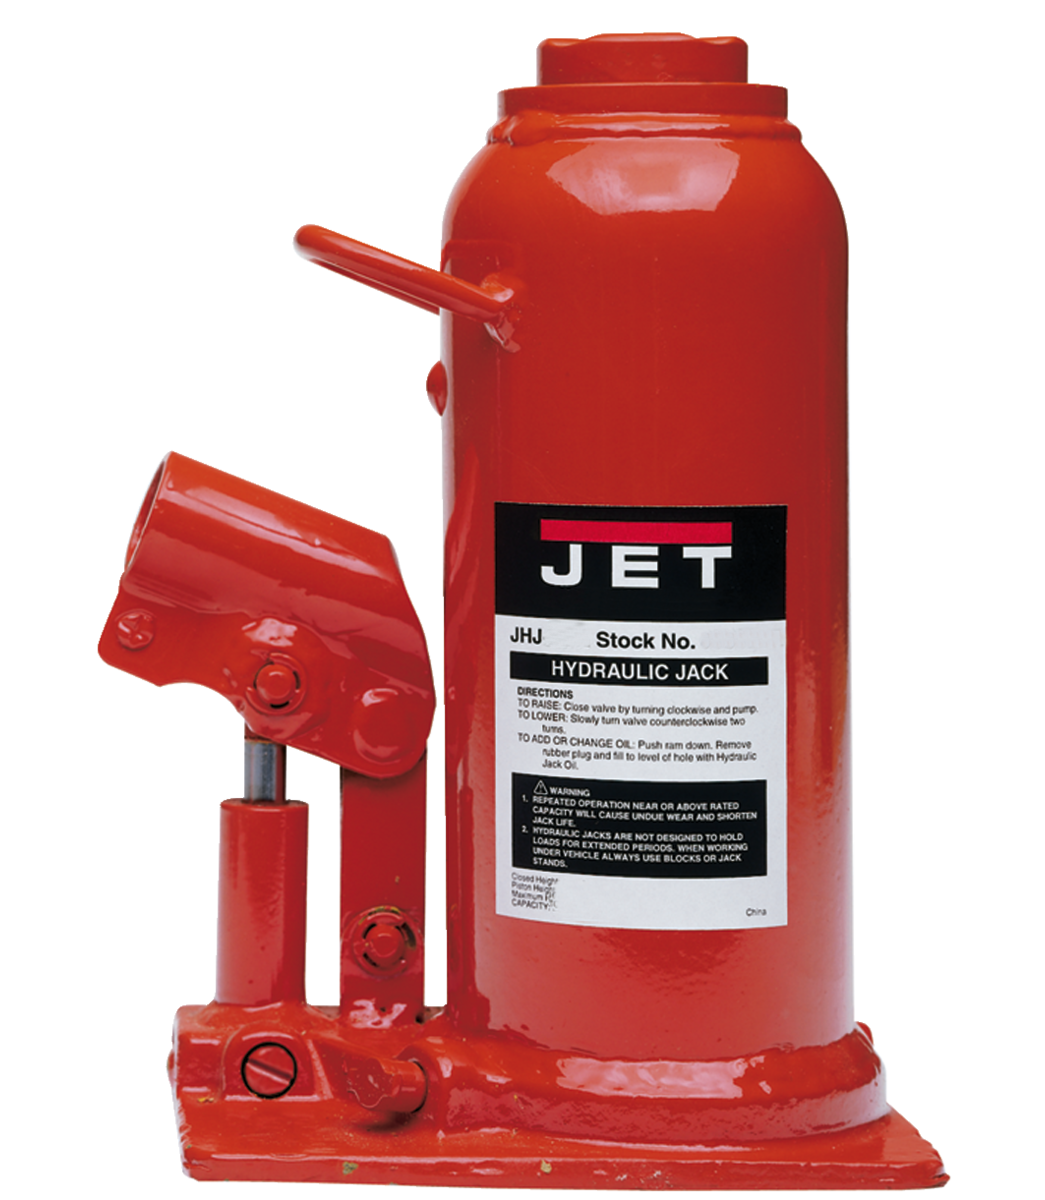 JHJ-8, 8-Ton Hydraulic Bottle Jack